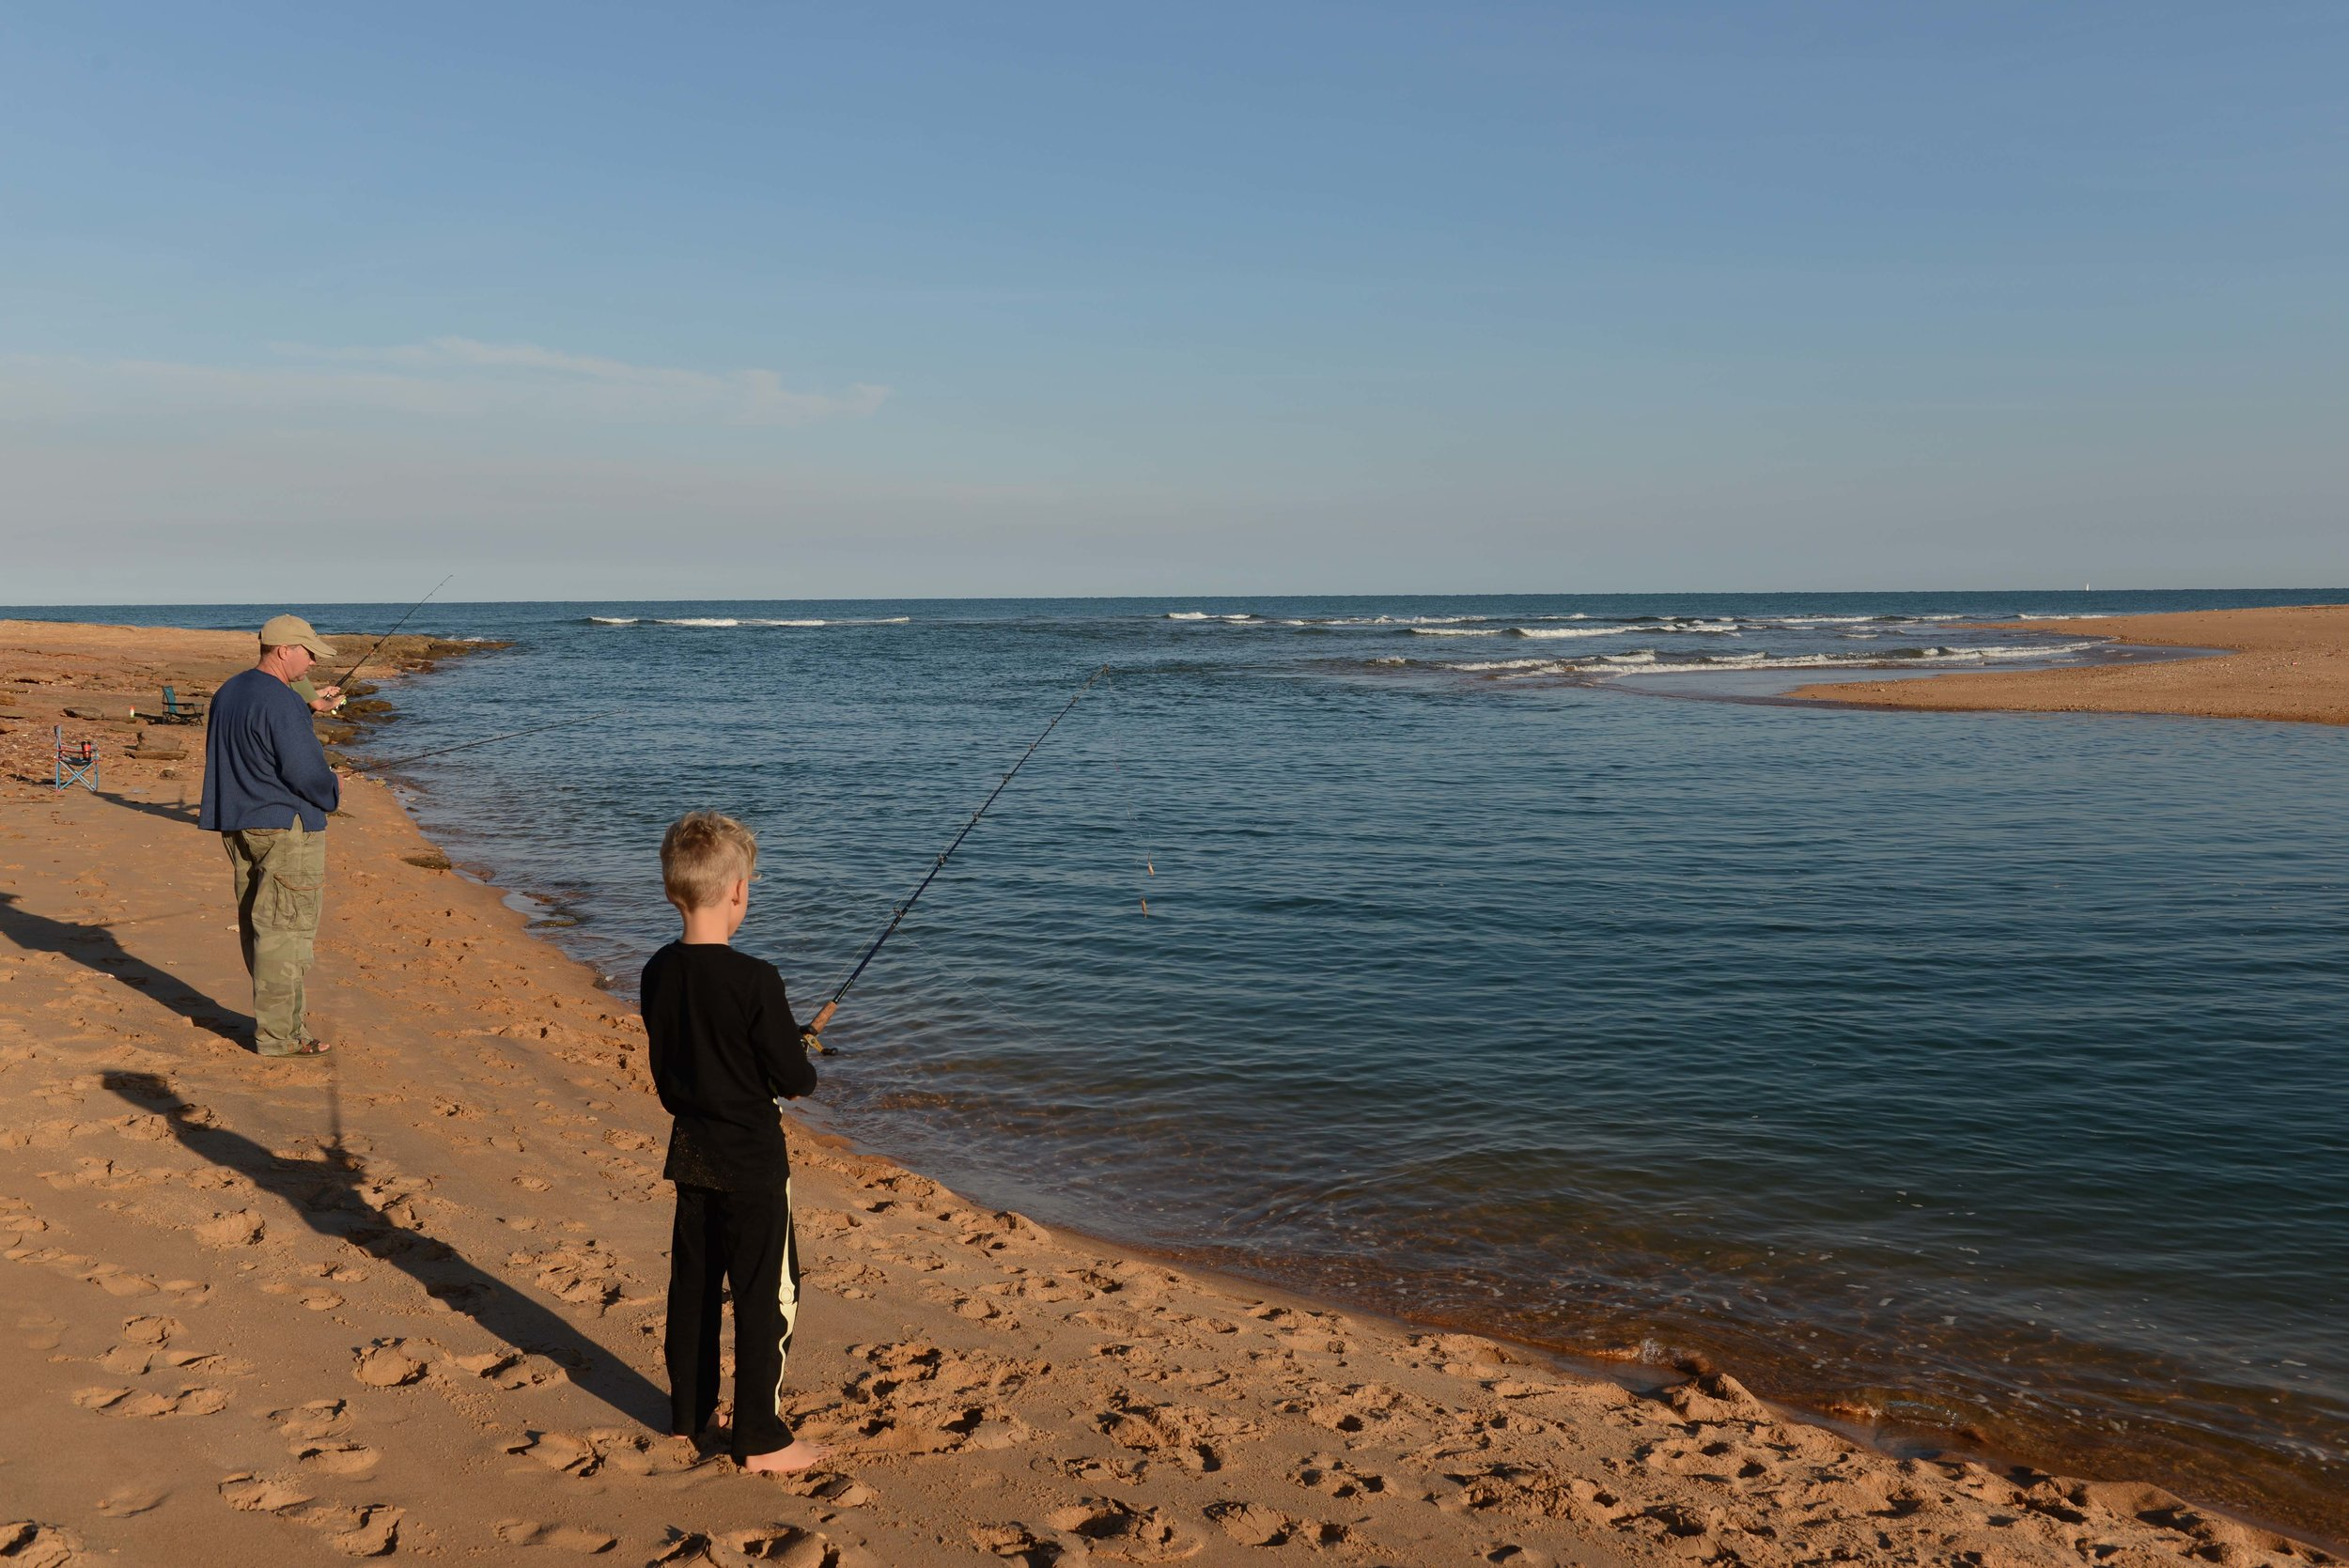 Tidal river is a great spot to try your luck at fishing